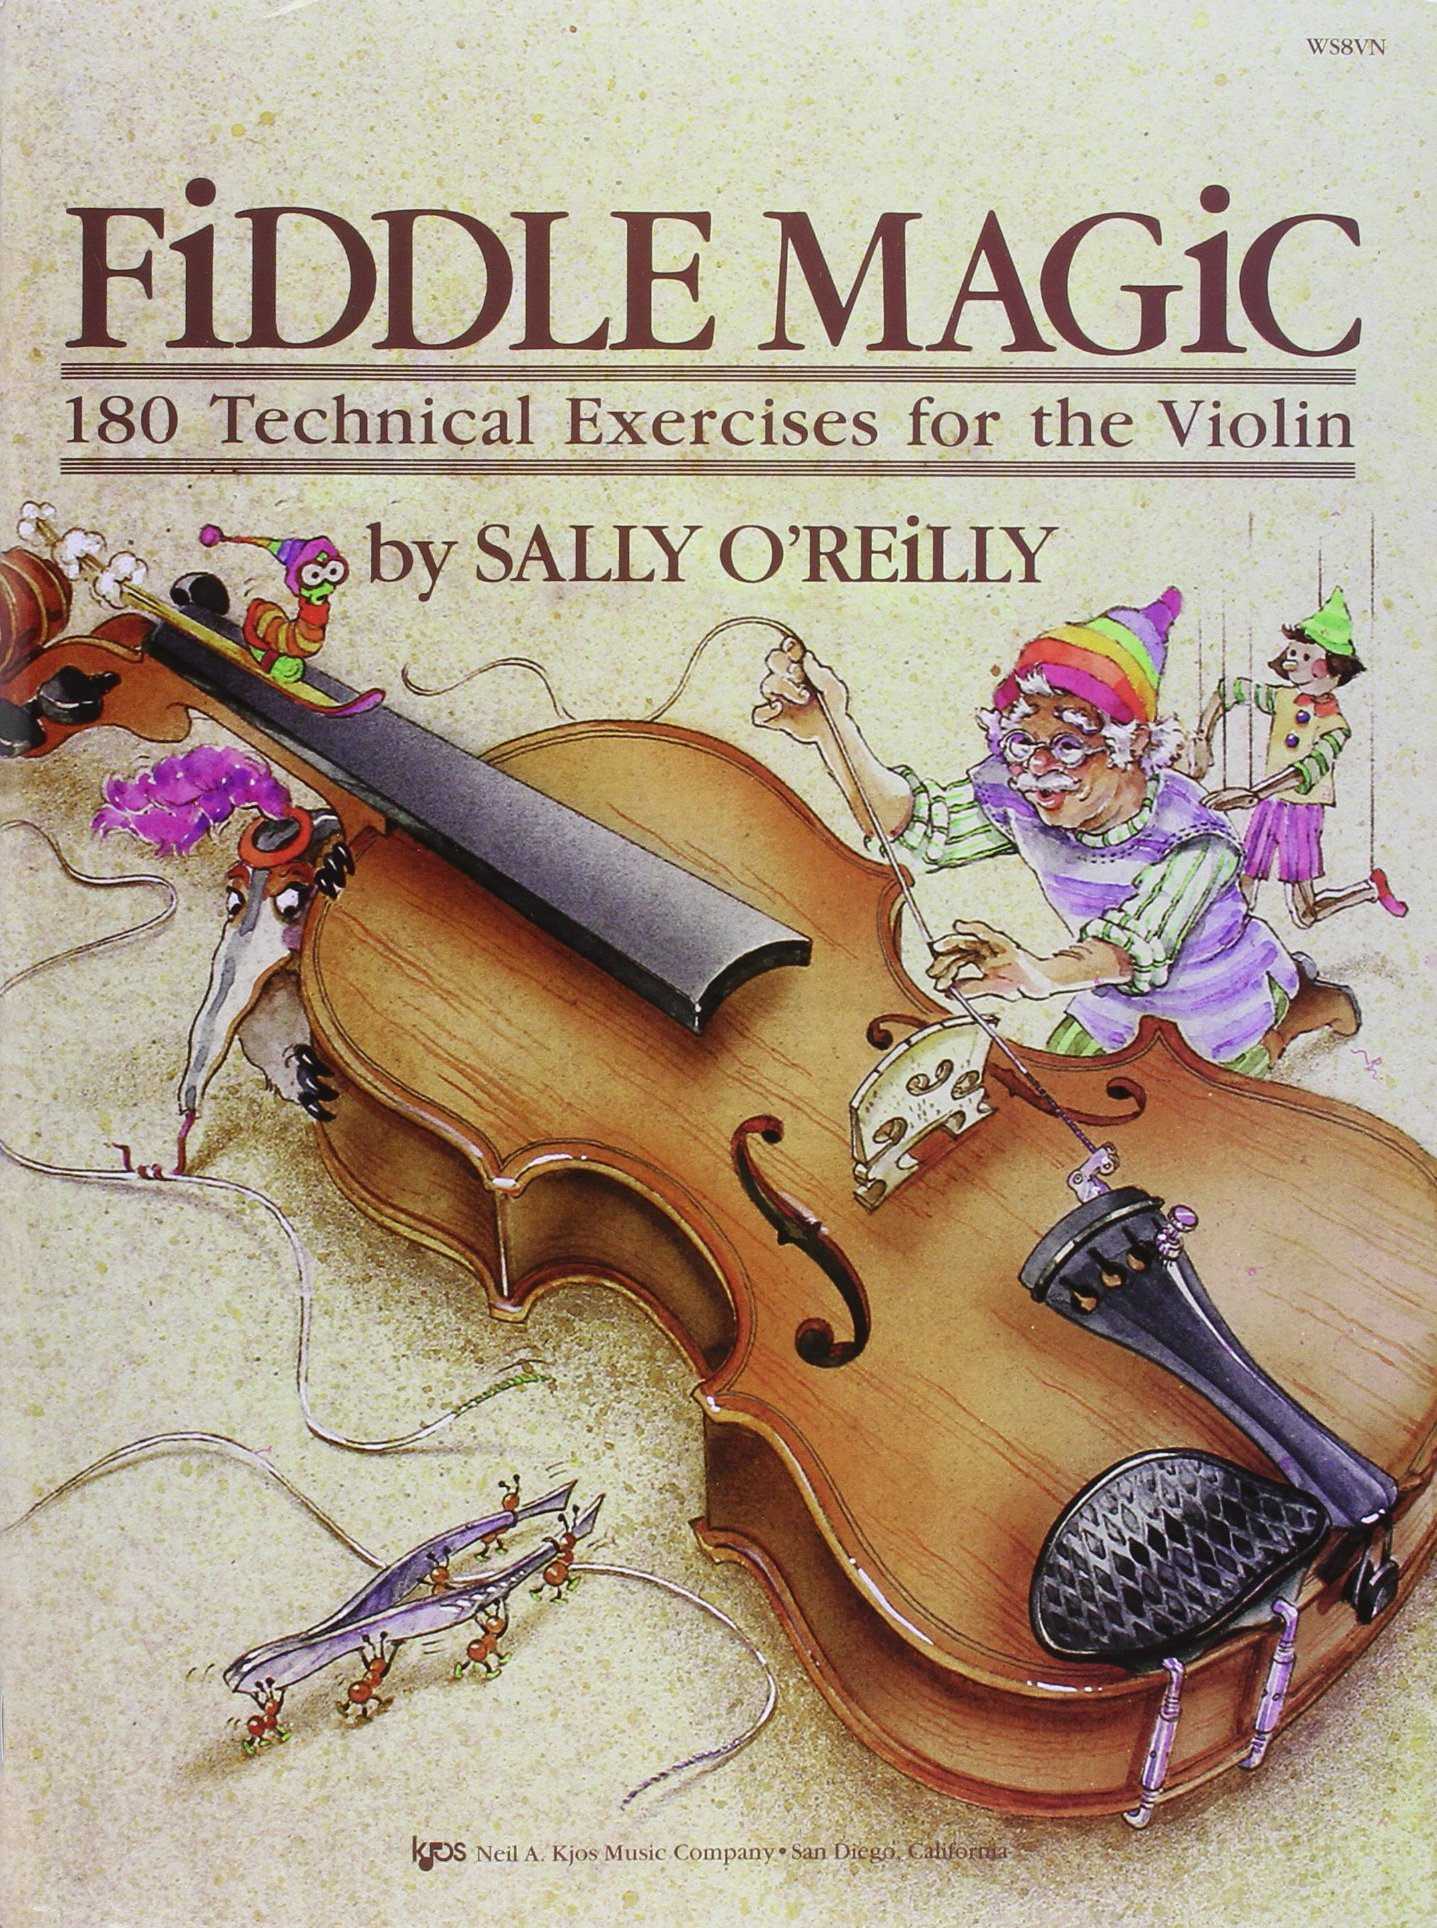 Read Online WS8VN - Fiddle Magic - 180 Technical Exercises for the Violin ebook